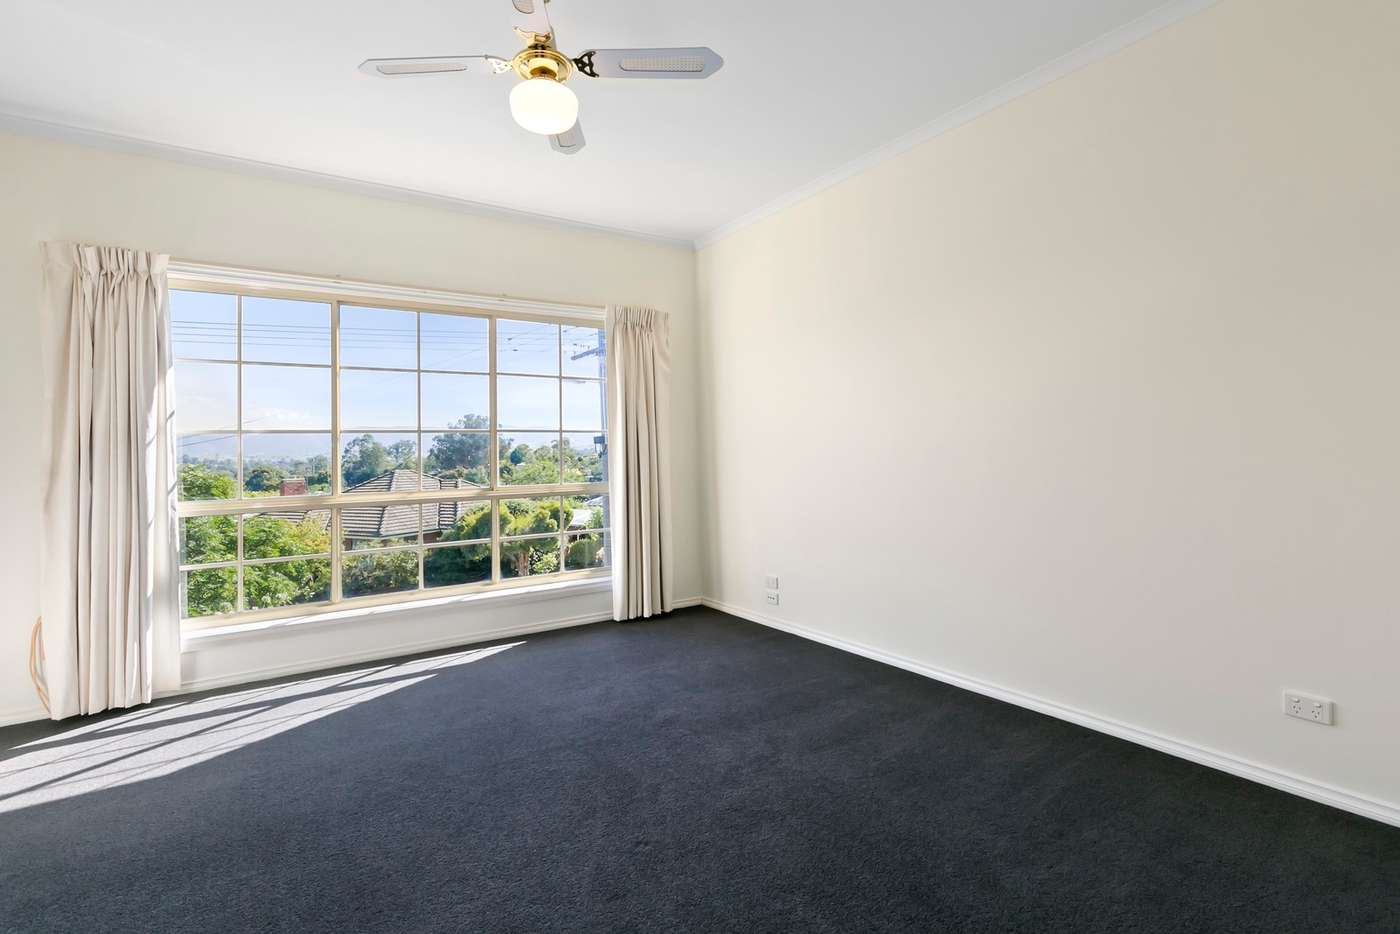 Fifth view of Homely house listing, 21 East Street, Yea VIC 3717